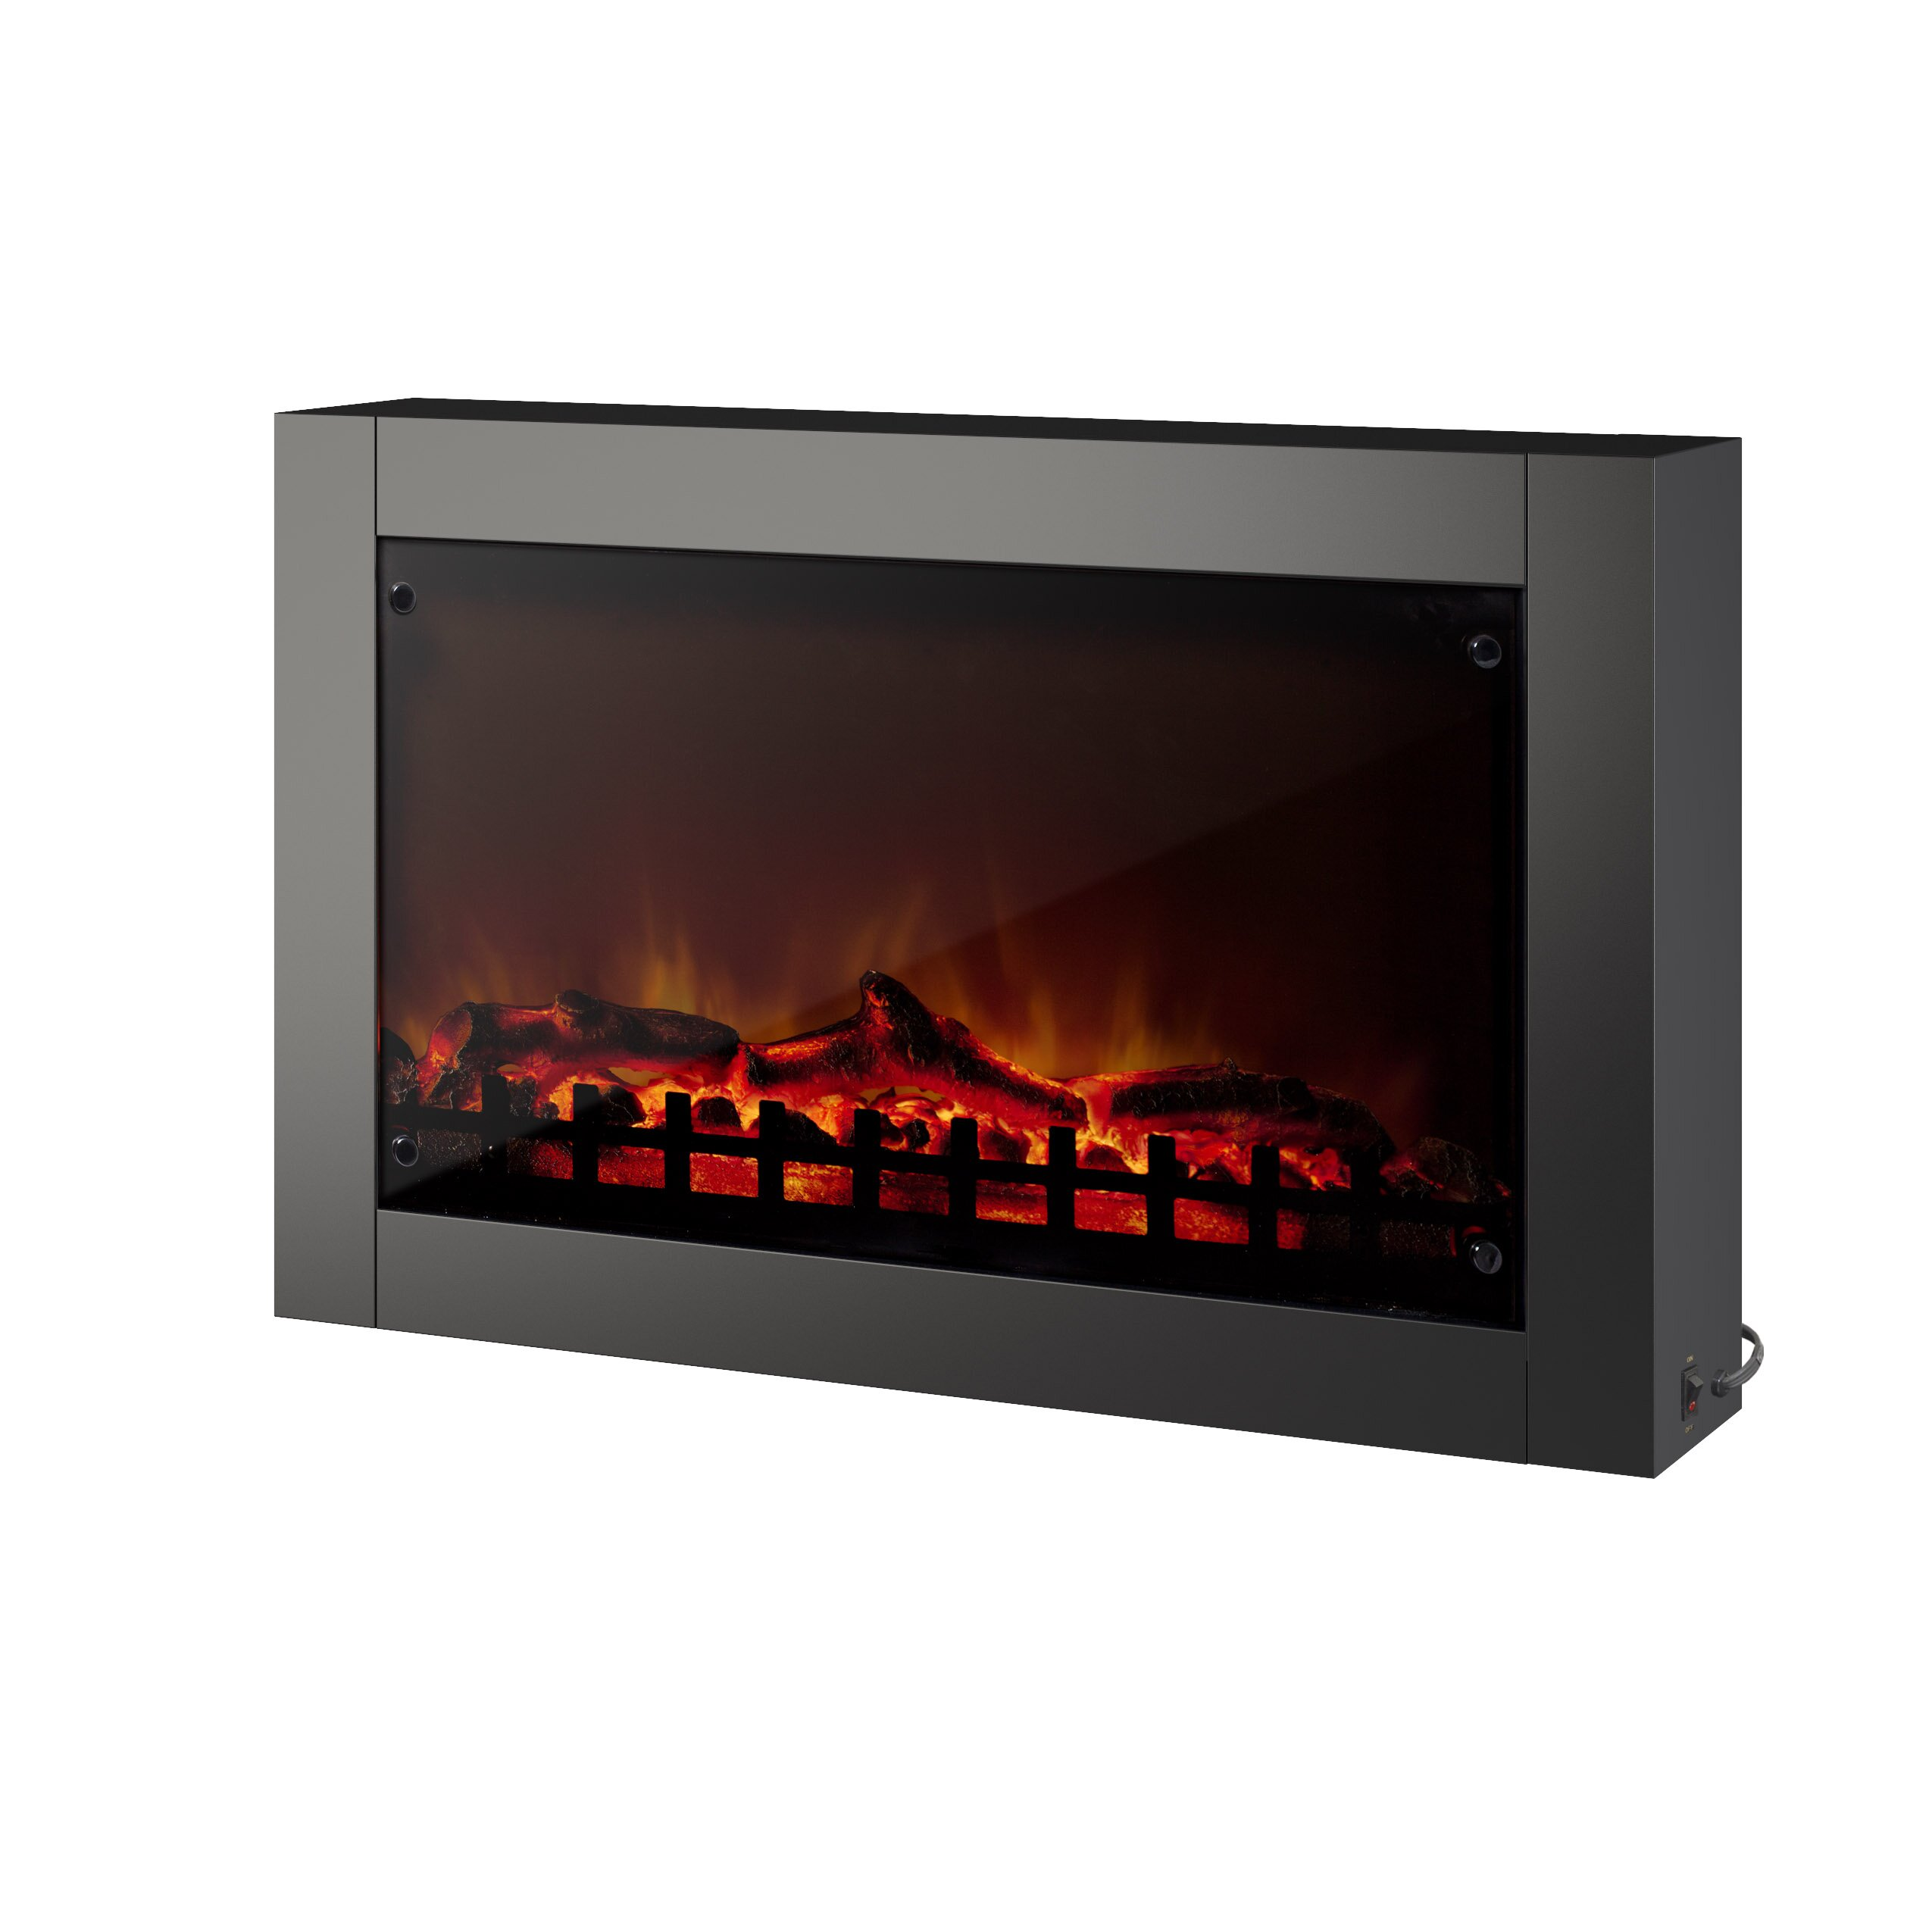 wall mounted electric fireplace by corliving